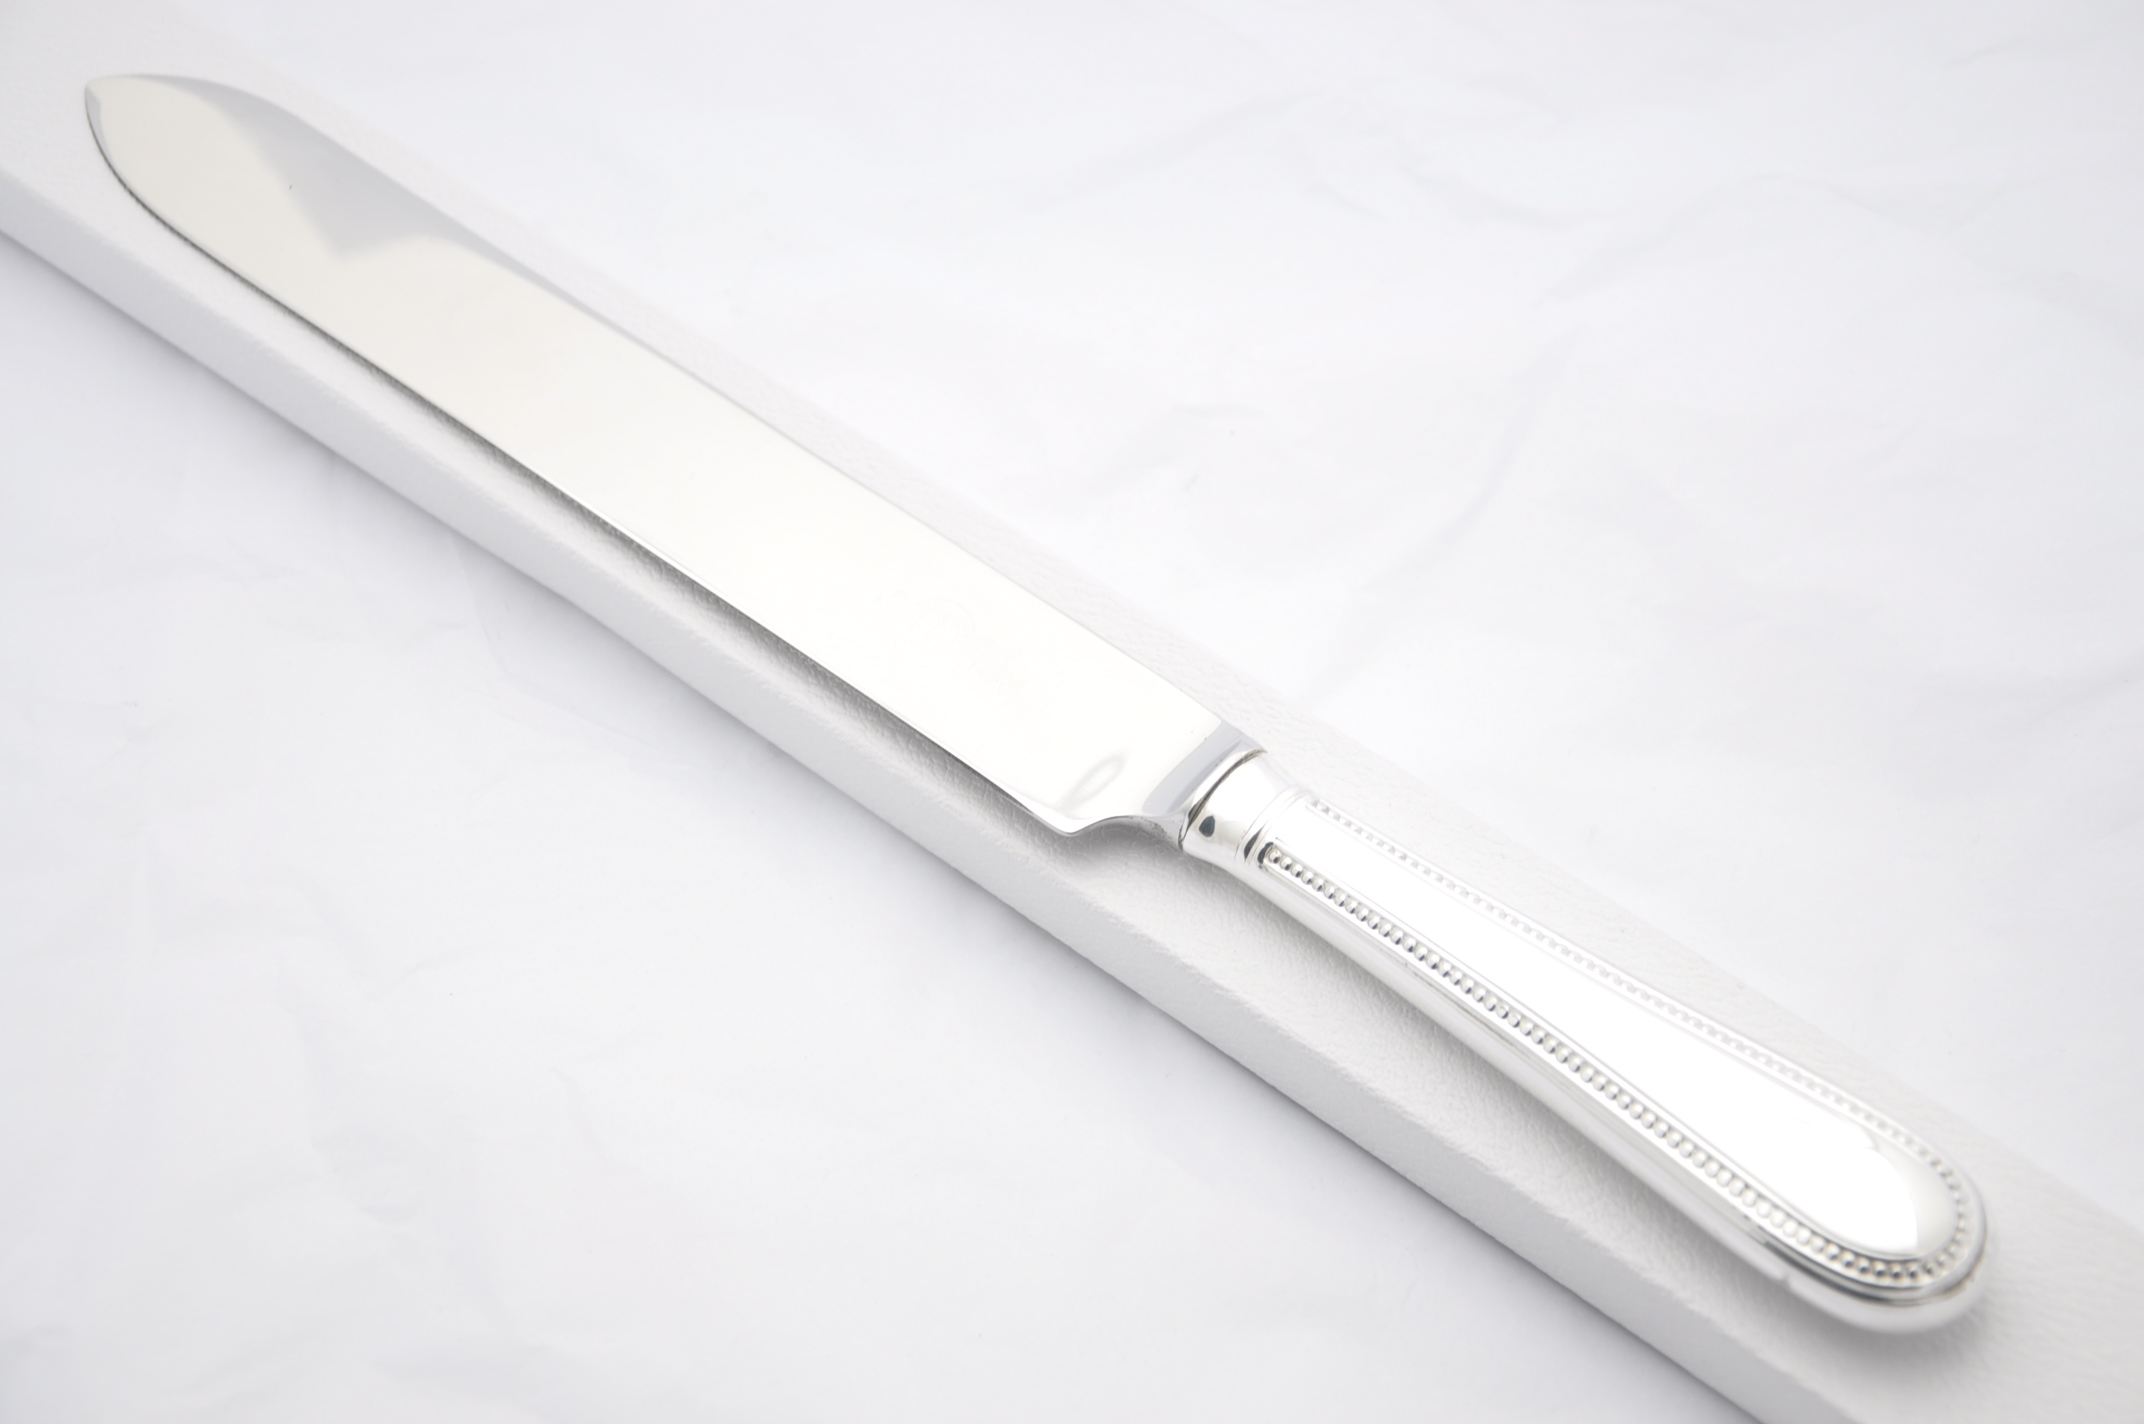 bead pattern silver plated wedding cake knife t boxed the